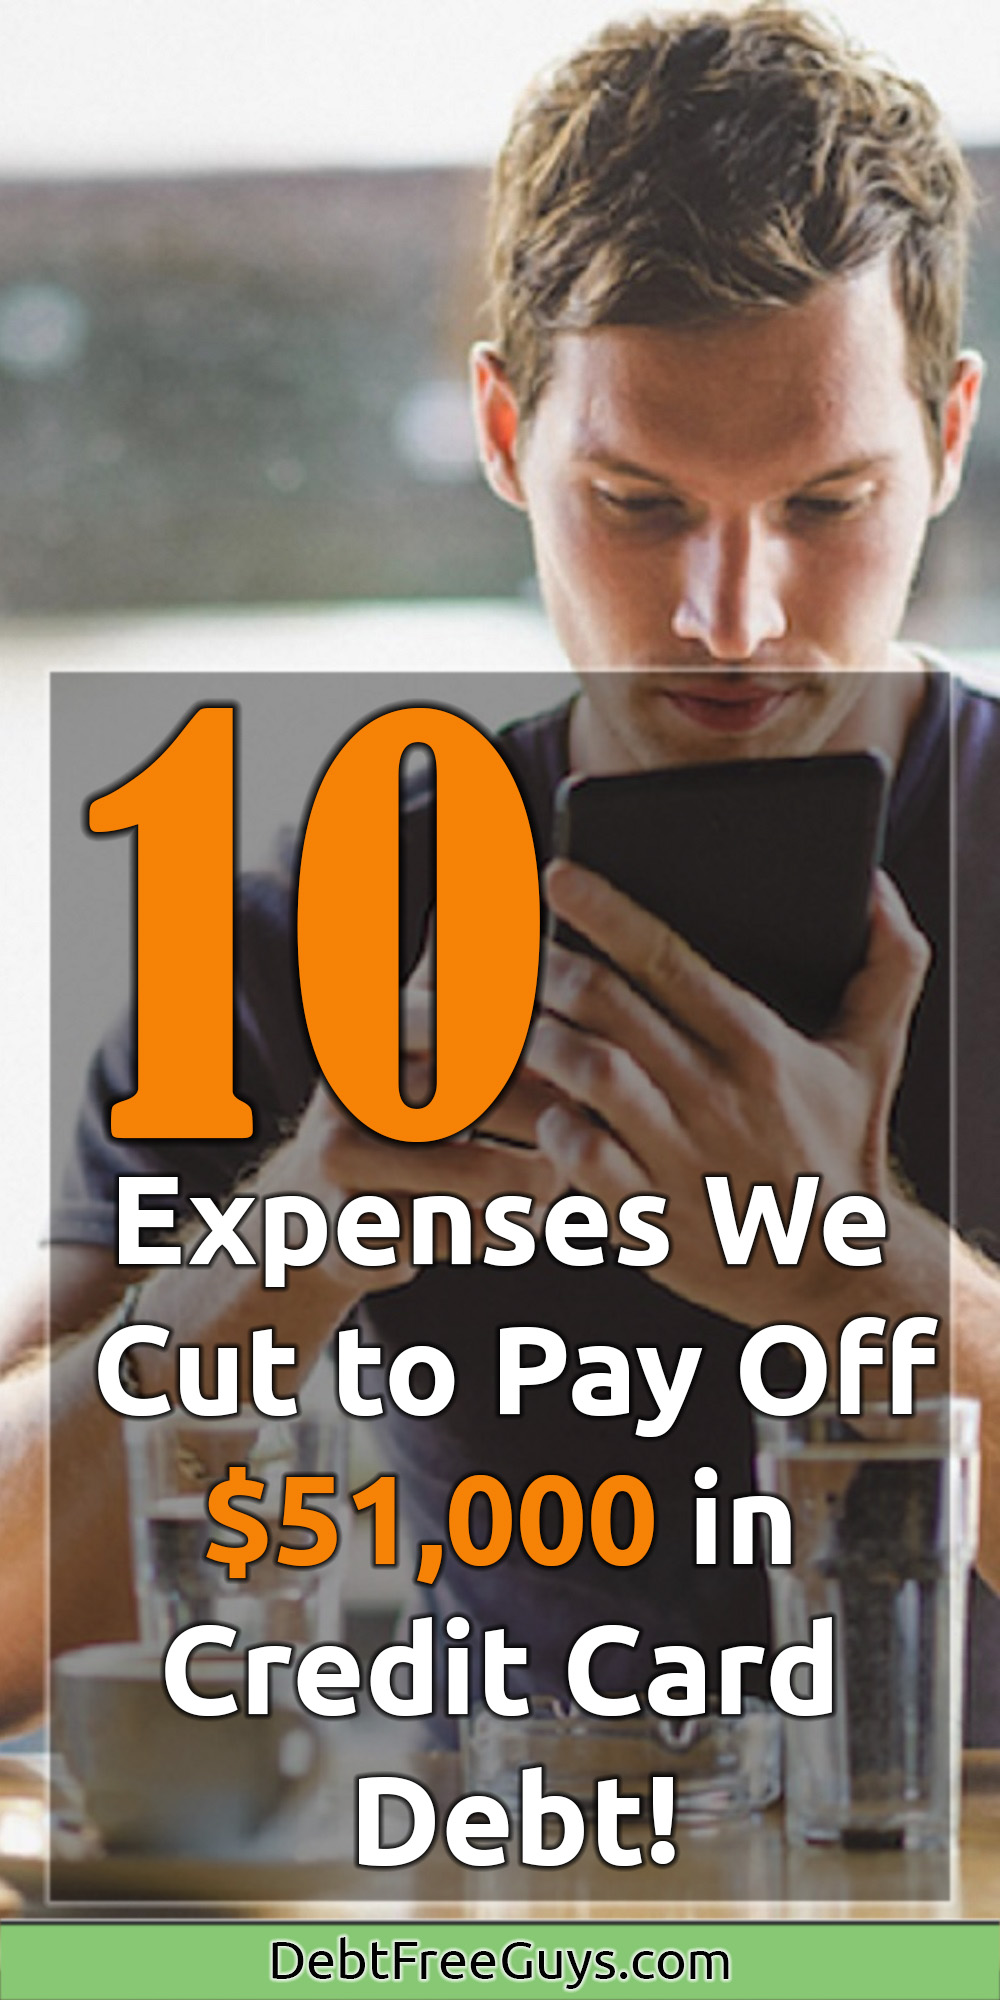 We paid off $51K in credit card debt in 2.5 years because we found great ways to reduce our expenses and not eliminate our fun. These tips are great and your friends will thank you for sharing them. #Expenses #Save #SaveMoney #CutExpenses